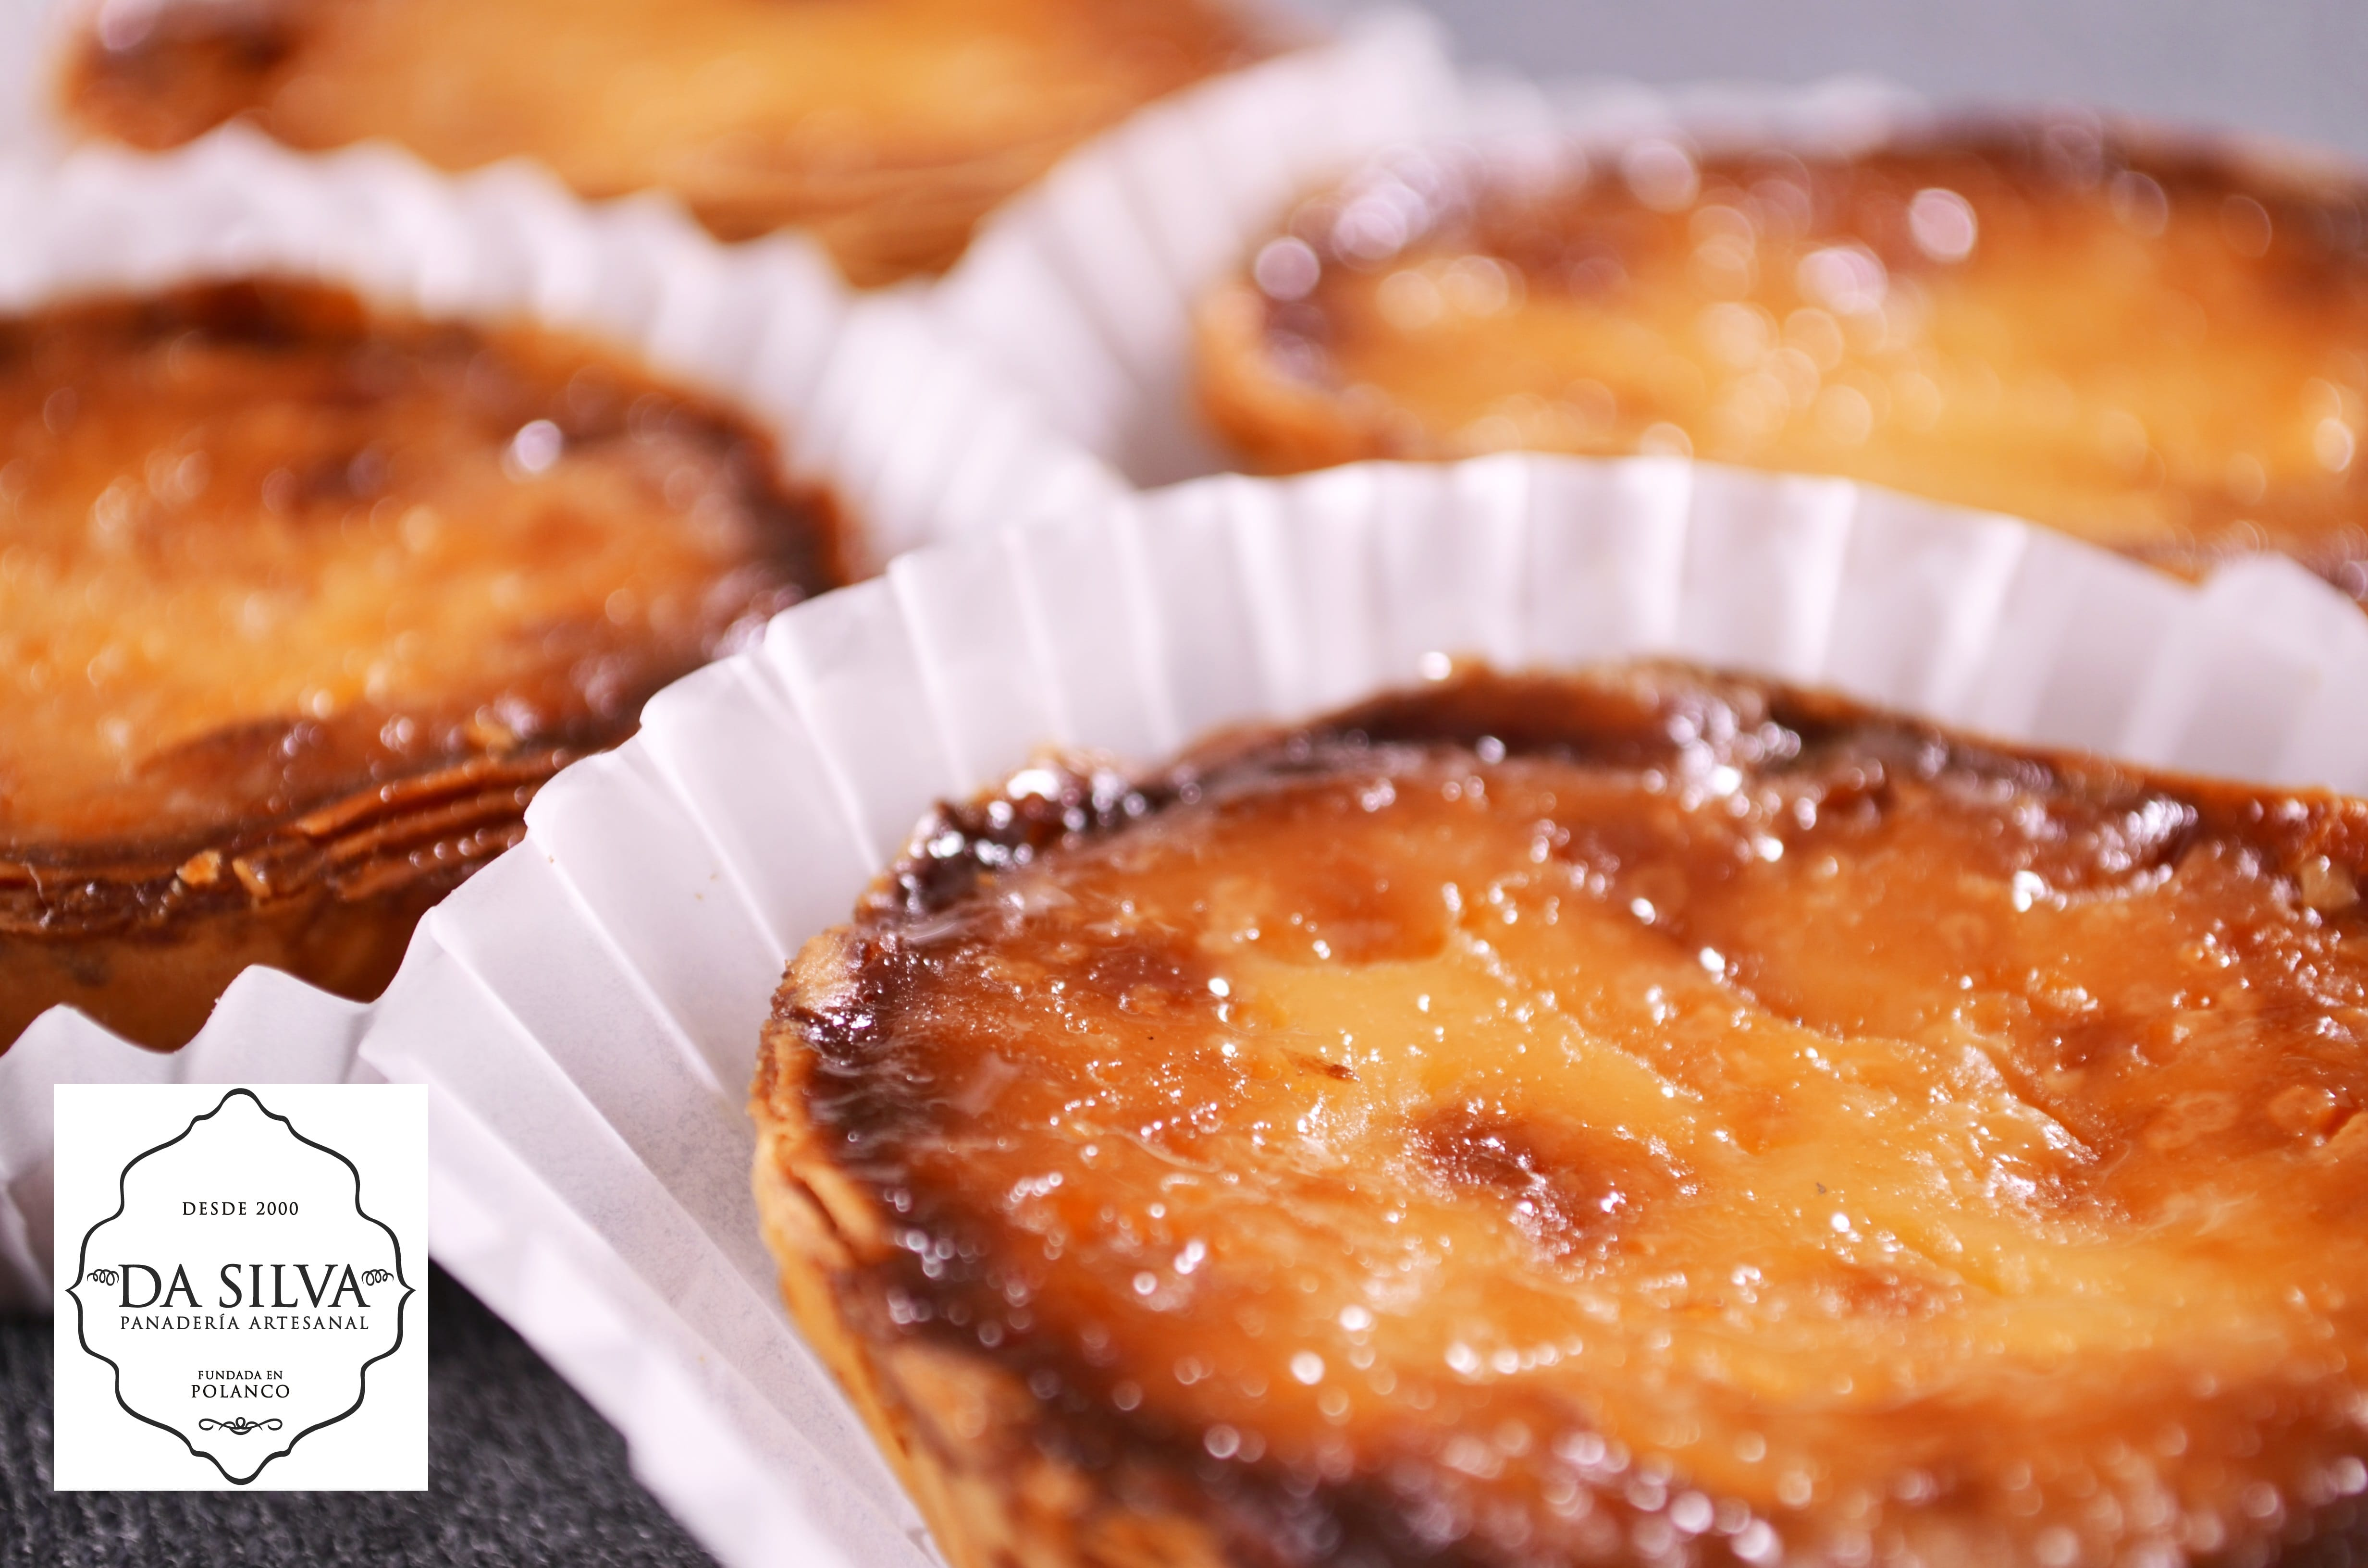 Pasteis de nata | Courtesy of Da Silva